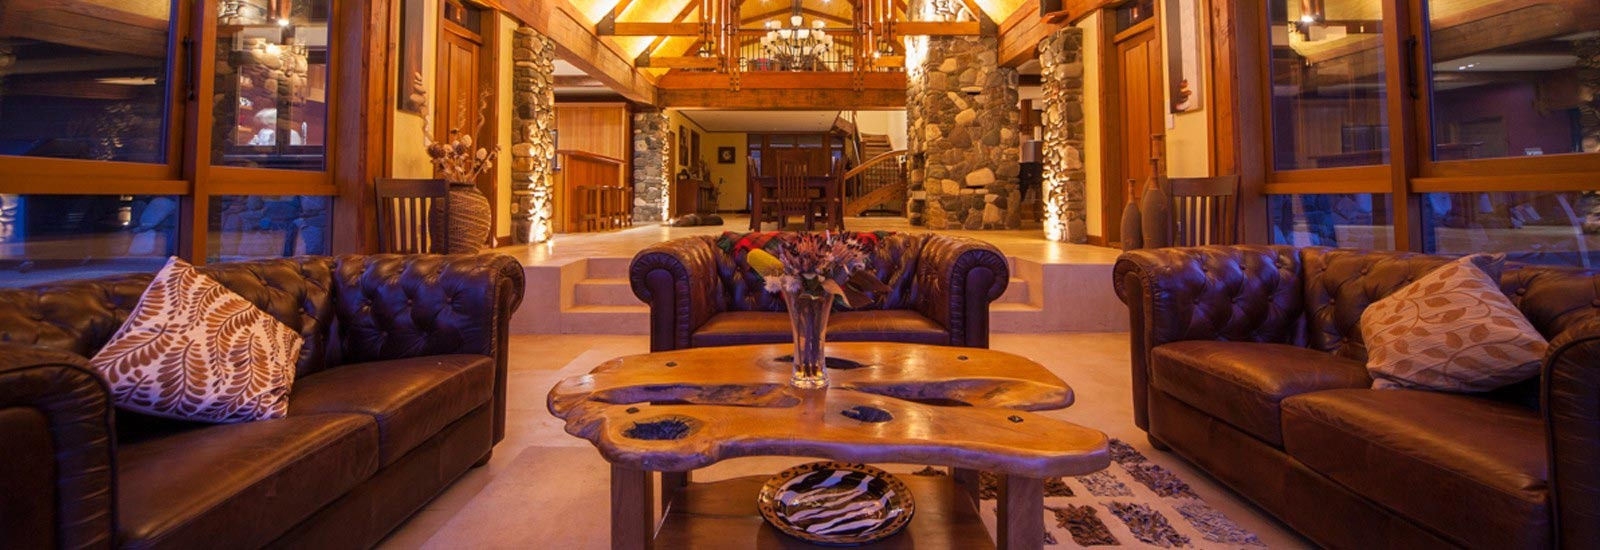 Luxury Lodge Interior